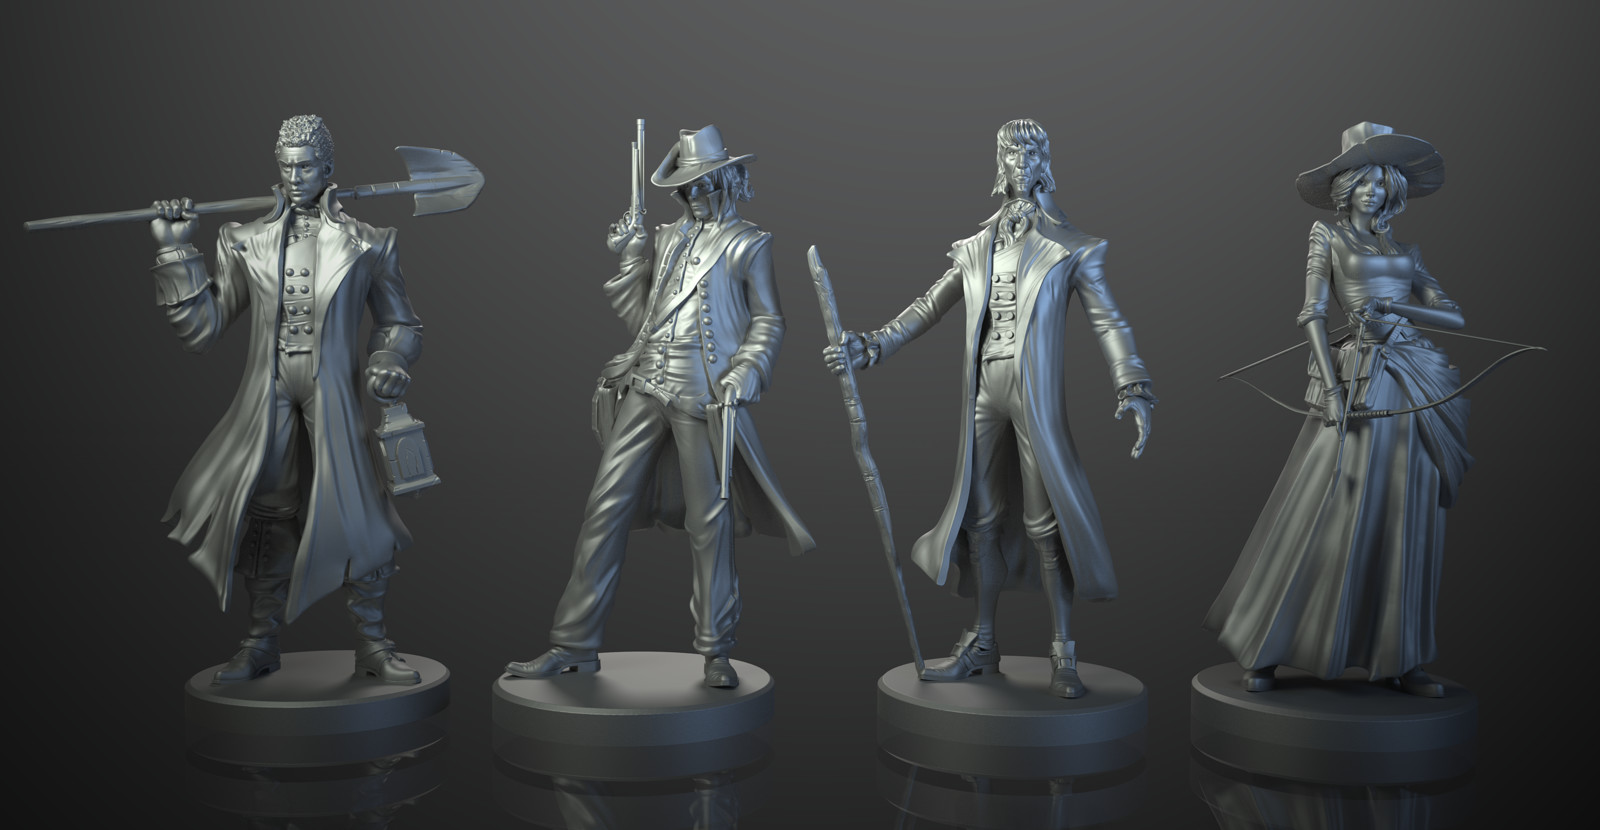 Legends of Sleepy Hollow boardgame - Cycles render